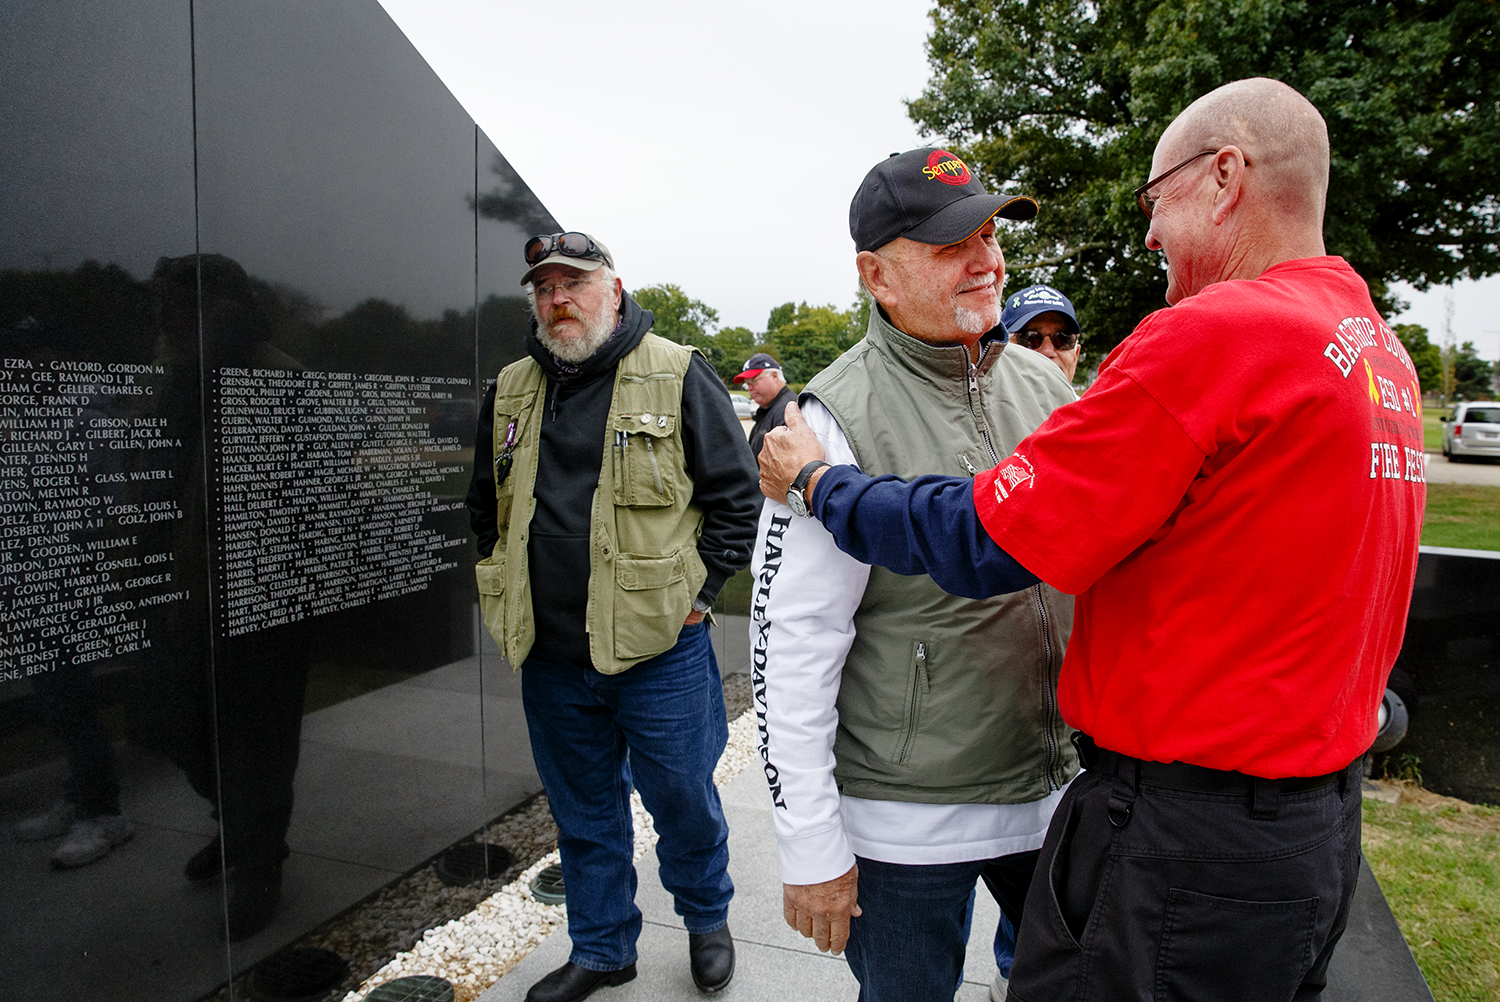 Mark Clingan, right, greets Tim Dunham during a gathering of the Springfield High Class of 1968 who were Vietnam veterans gathered to catch up and reminisce at the Vietnam War Memorial in Oak Ridge Cemetery Saturday, Sept. 29, 2018. [Ted Schurter/The State Journal-Register]